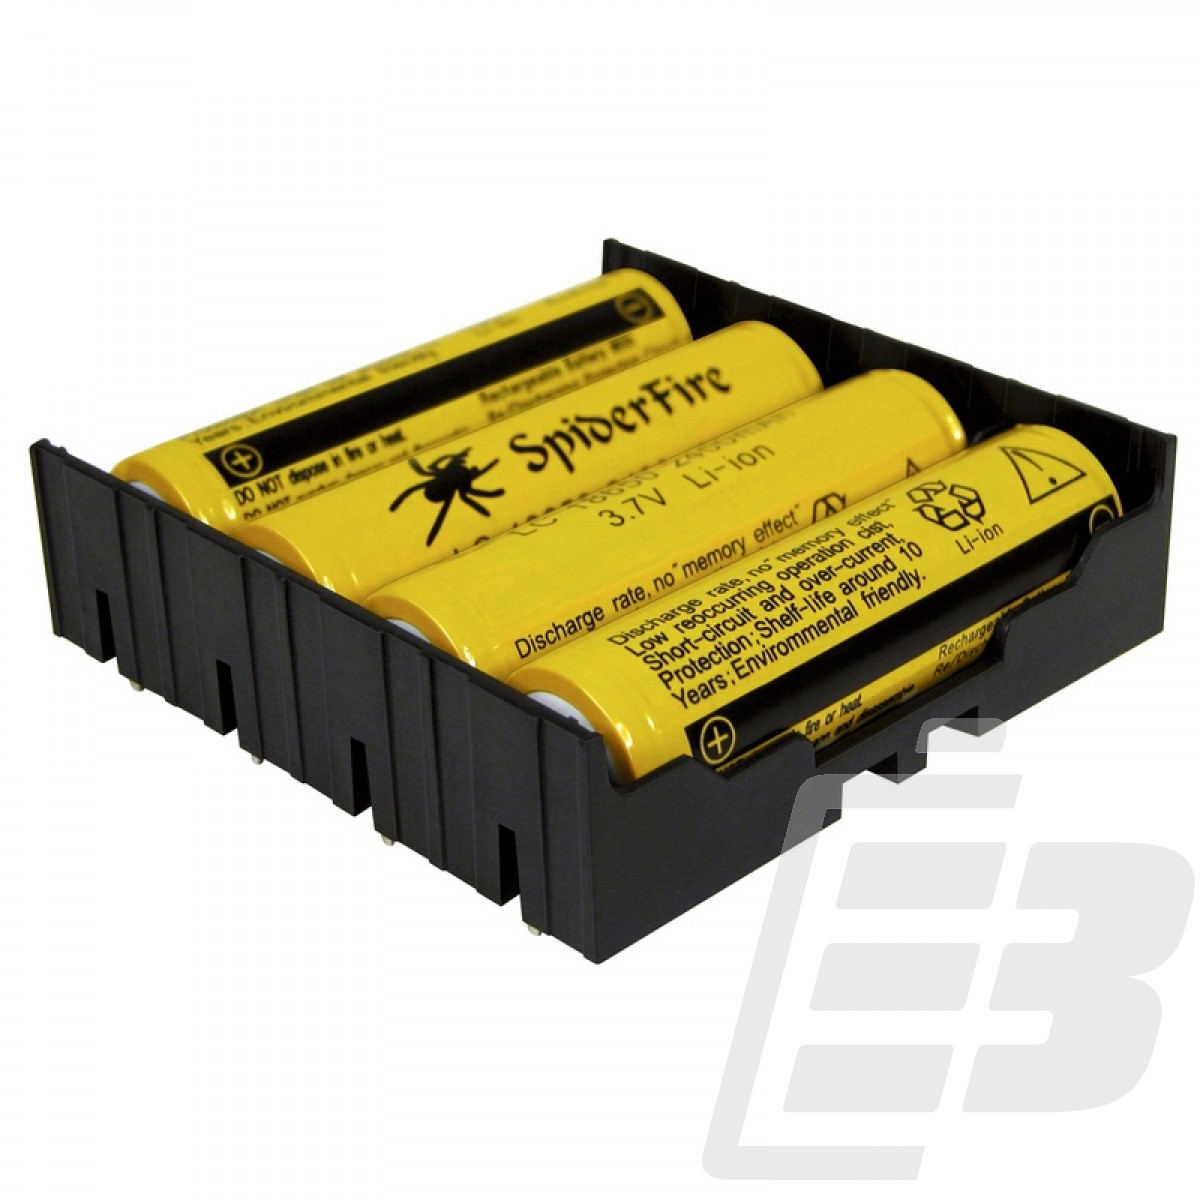 MPD Battery holder size 18650 4 cells